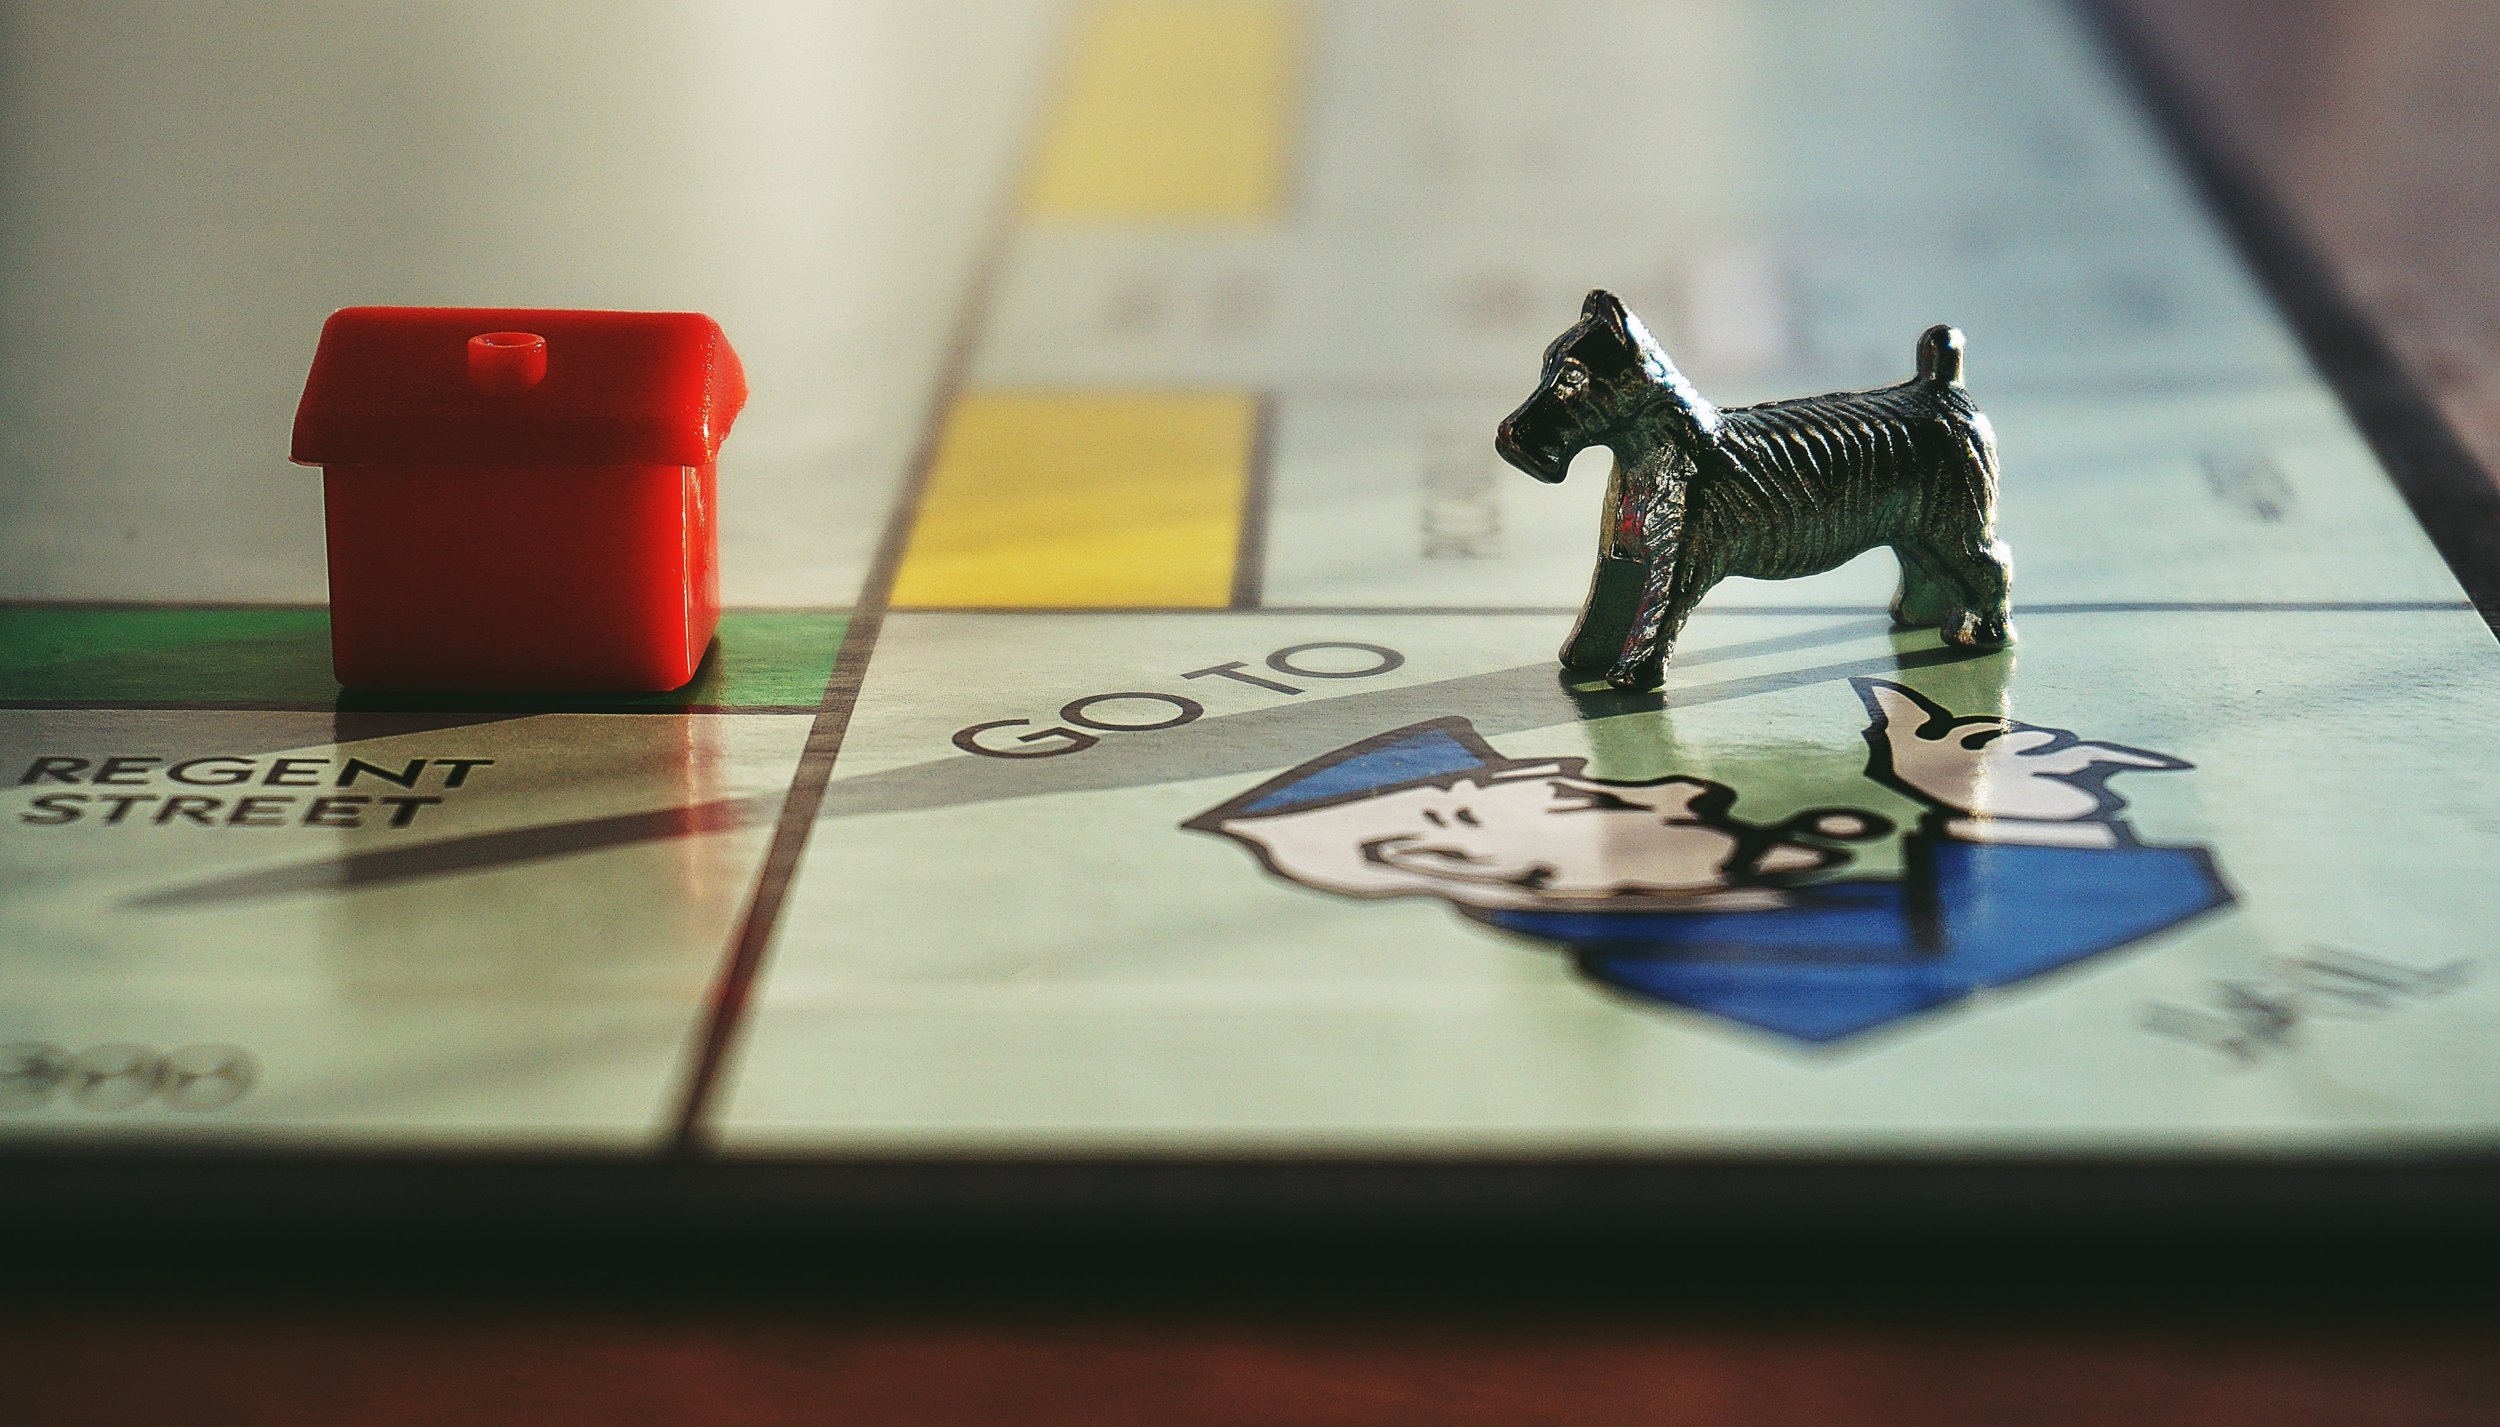 activity-board-game-close-up-1314435.jpg